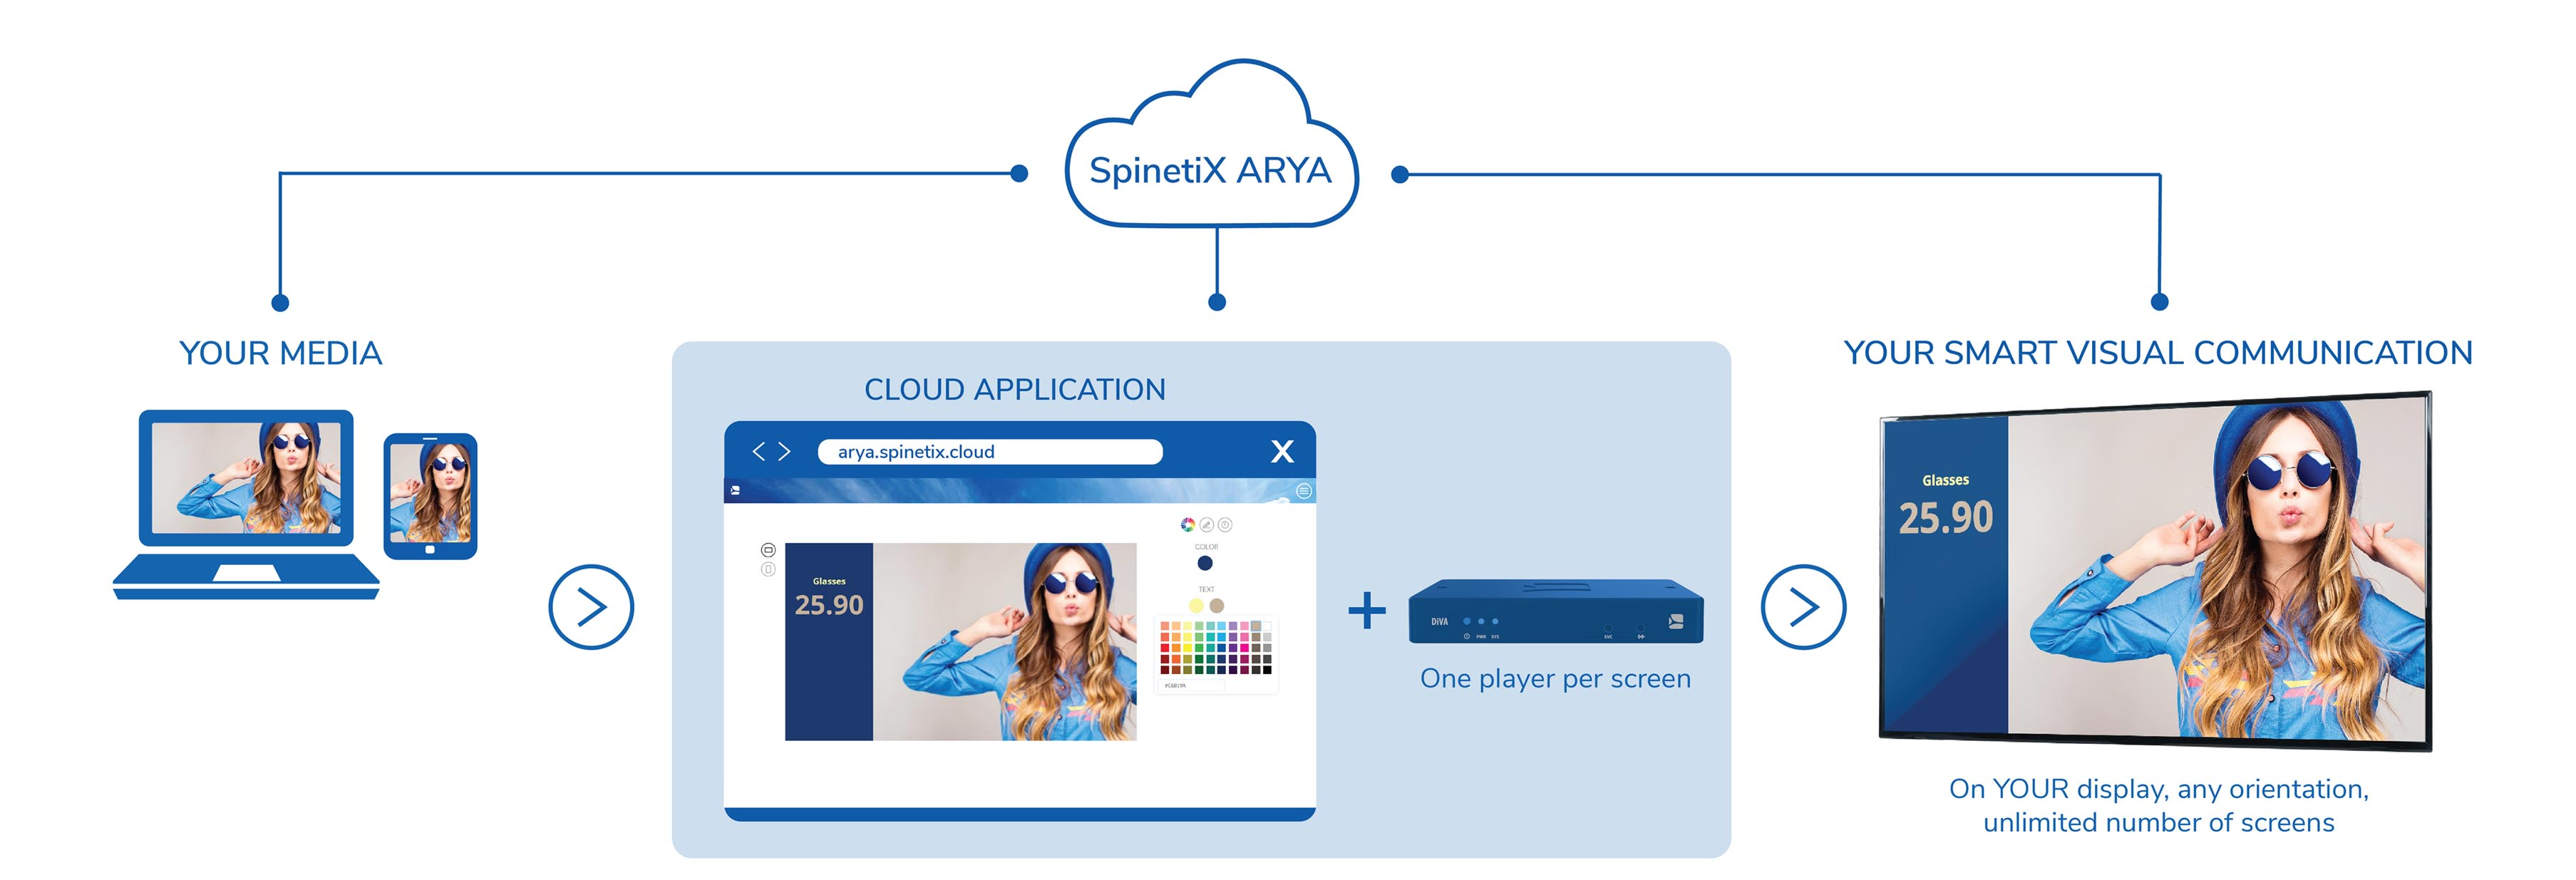 spinetix arya how it works infographic